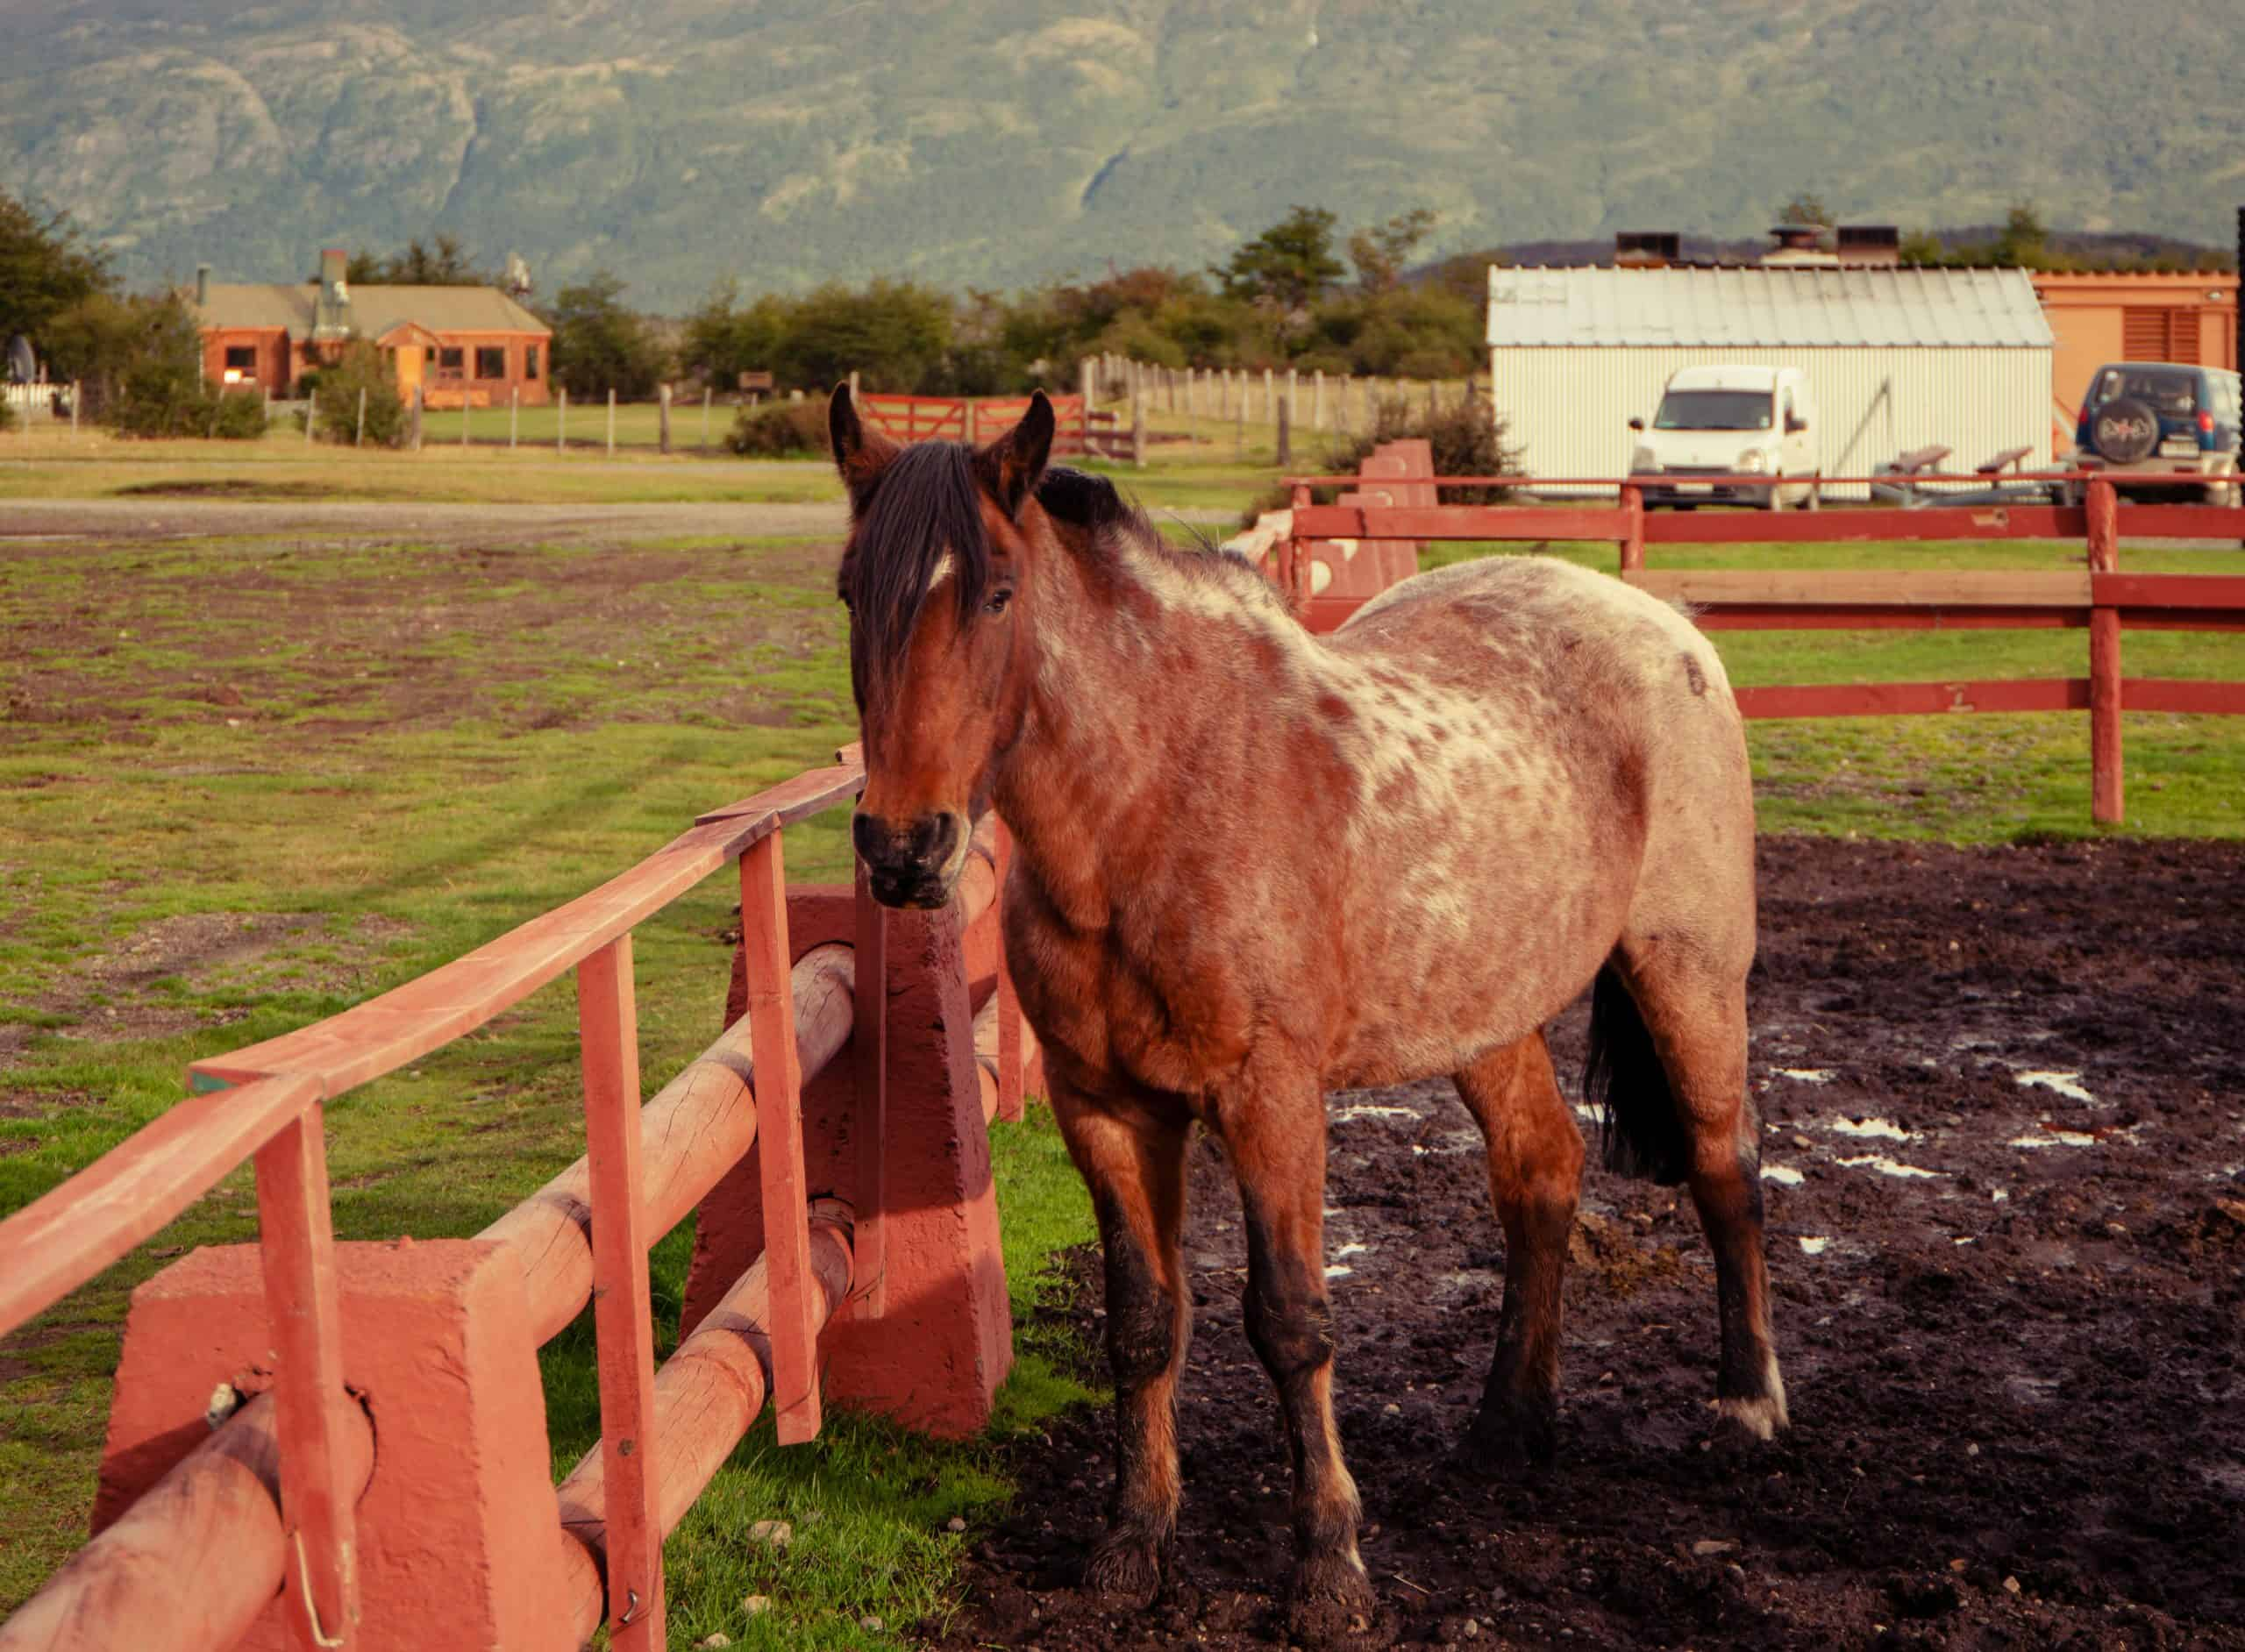 Horse in stable in Chile